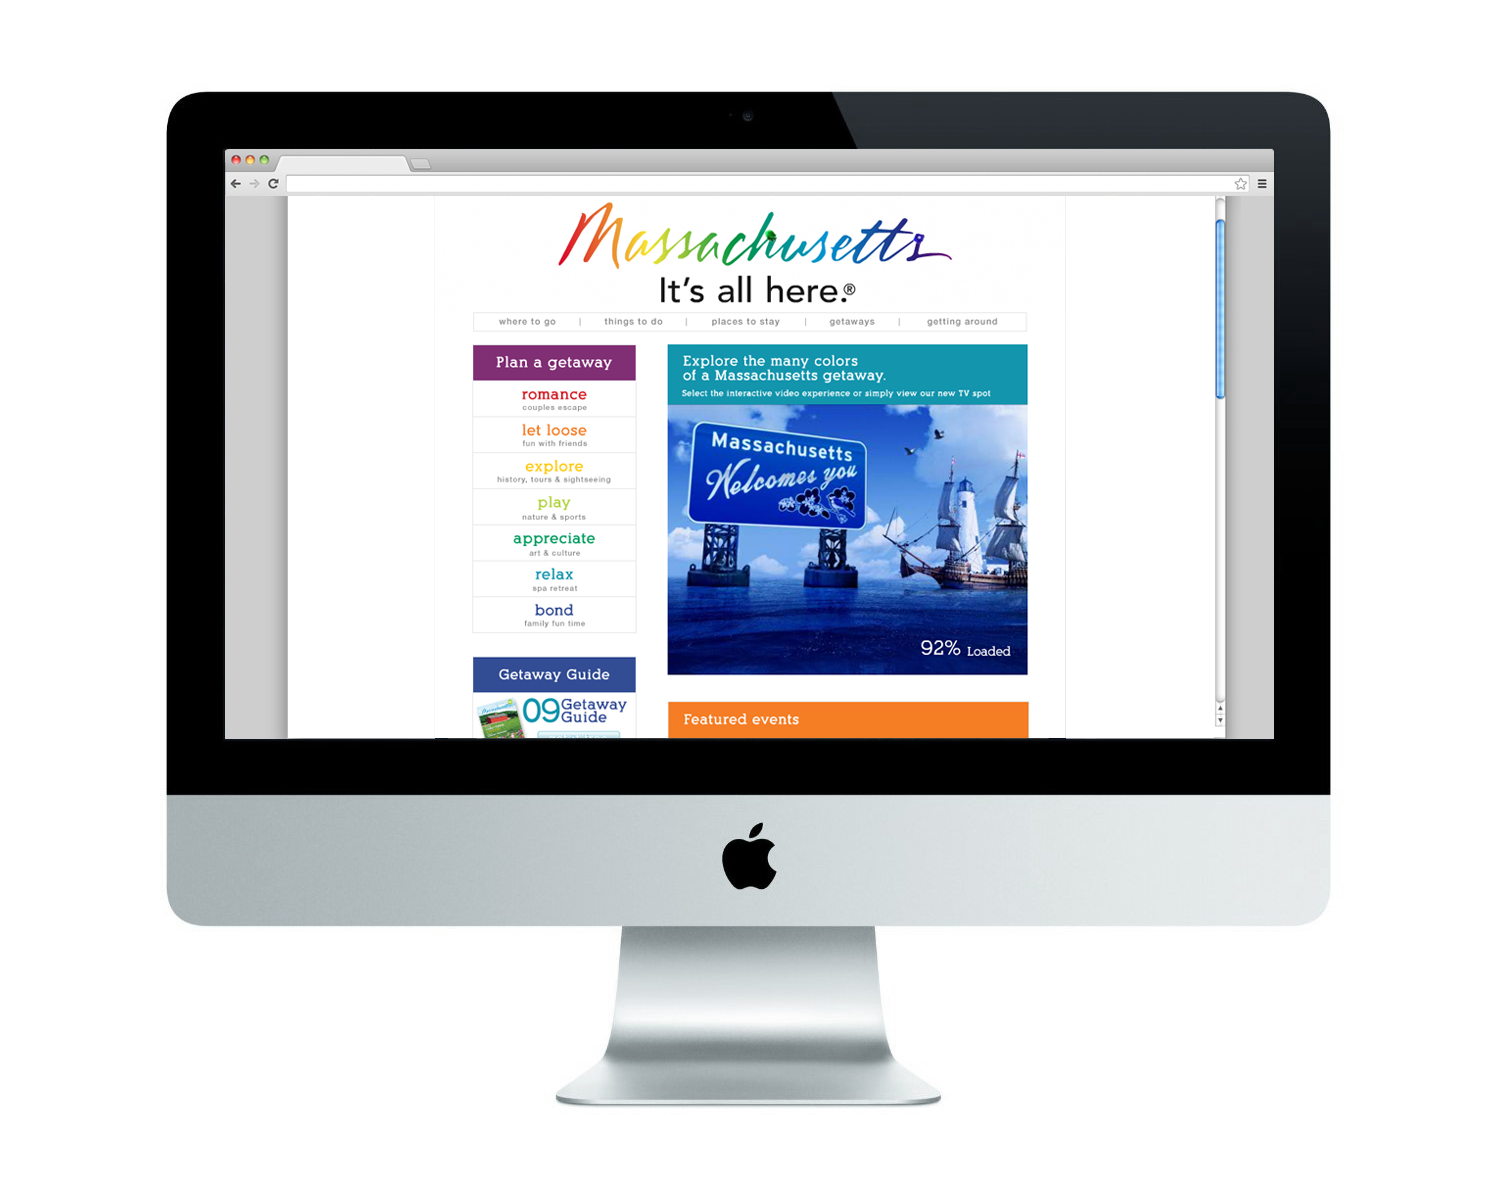 Mass Office of Travel and Tourism Homepage Redesign | Web Developer: Dan Gullotti